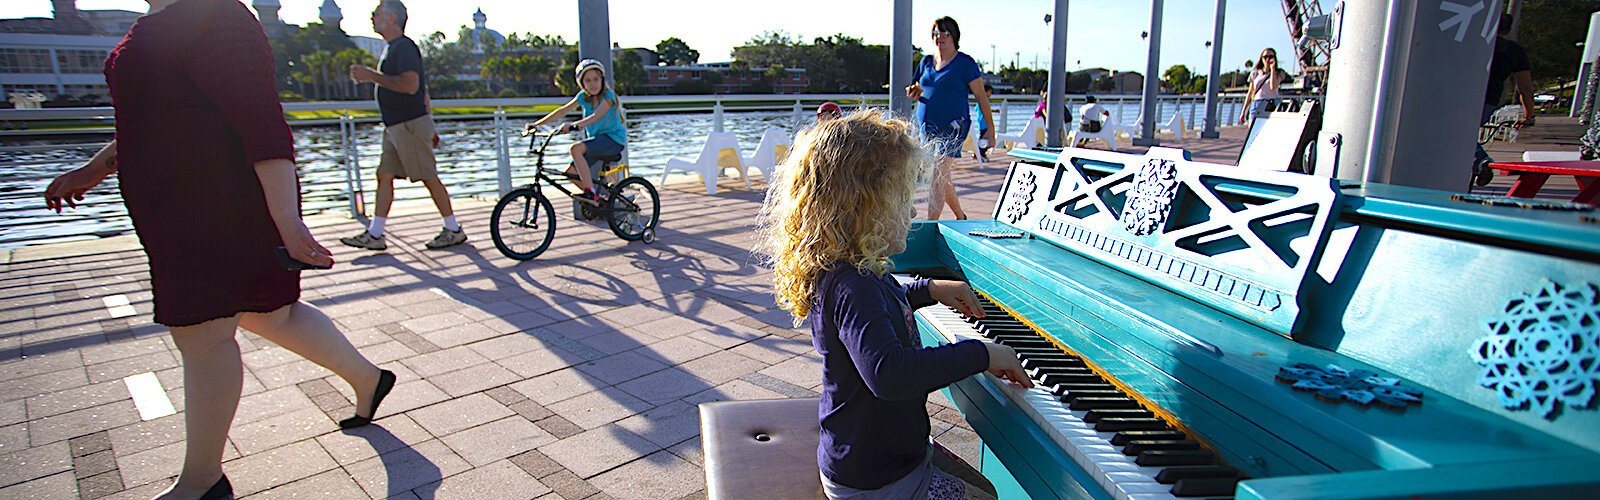 "Winter Village at Curtis Hixon Park is complete with a ""street piano"" adorned with snowflakes for the holidays."